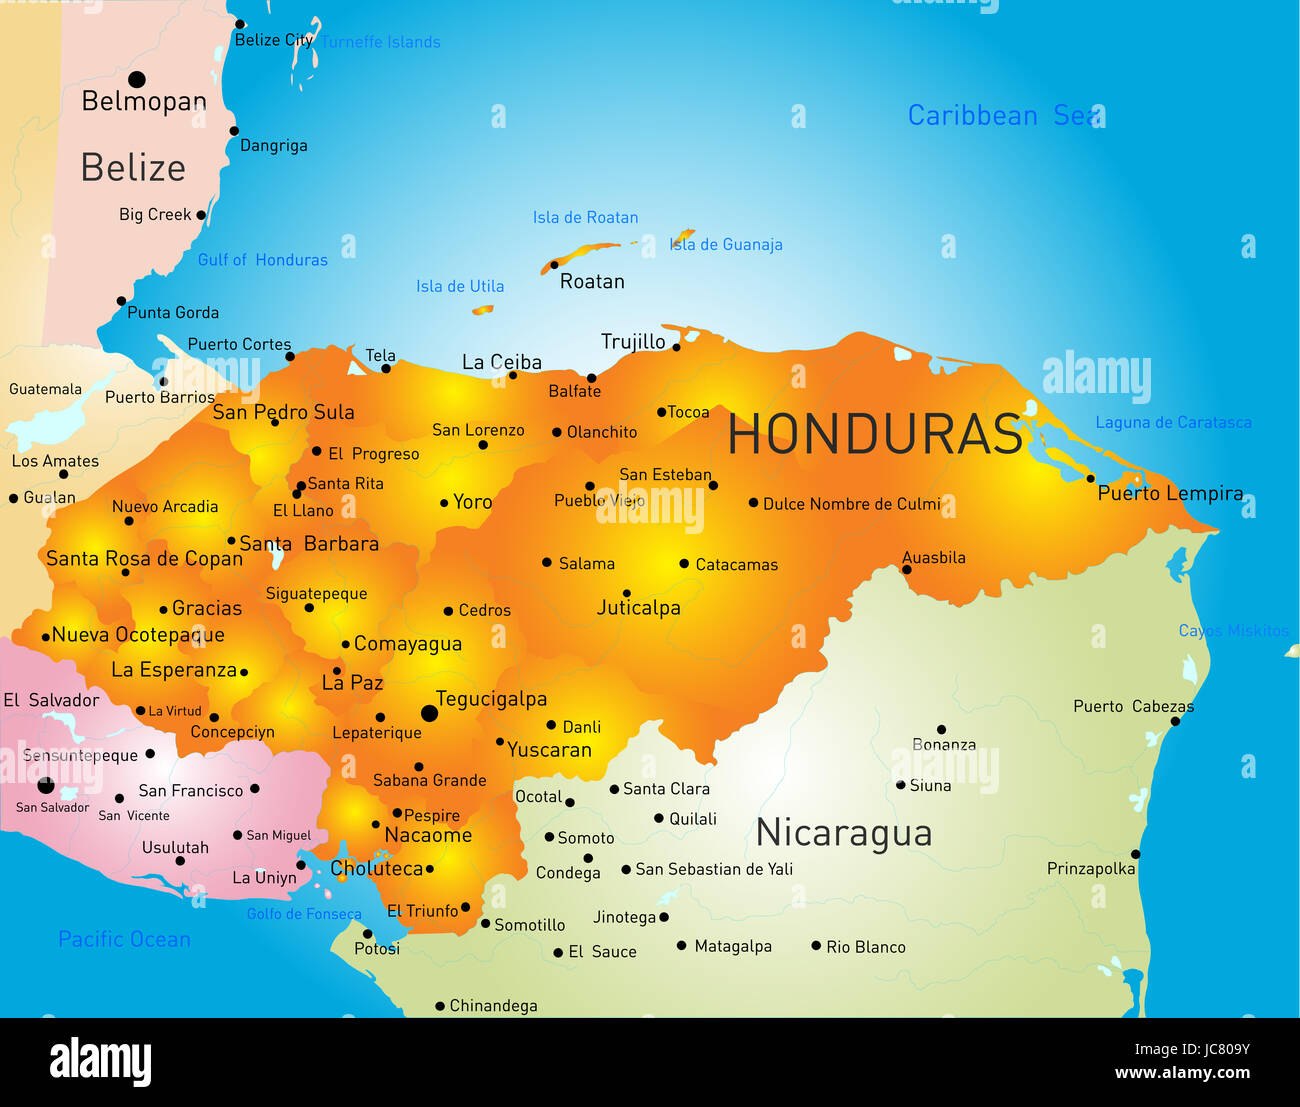 Honduras Country Vector Color Map Stockfotos & Honduras Country ...